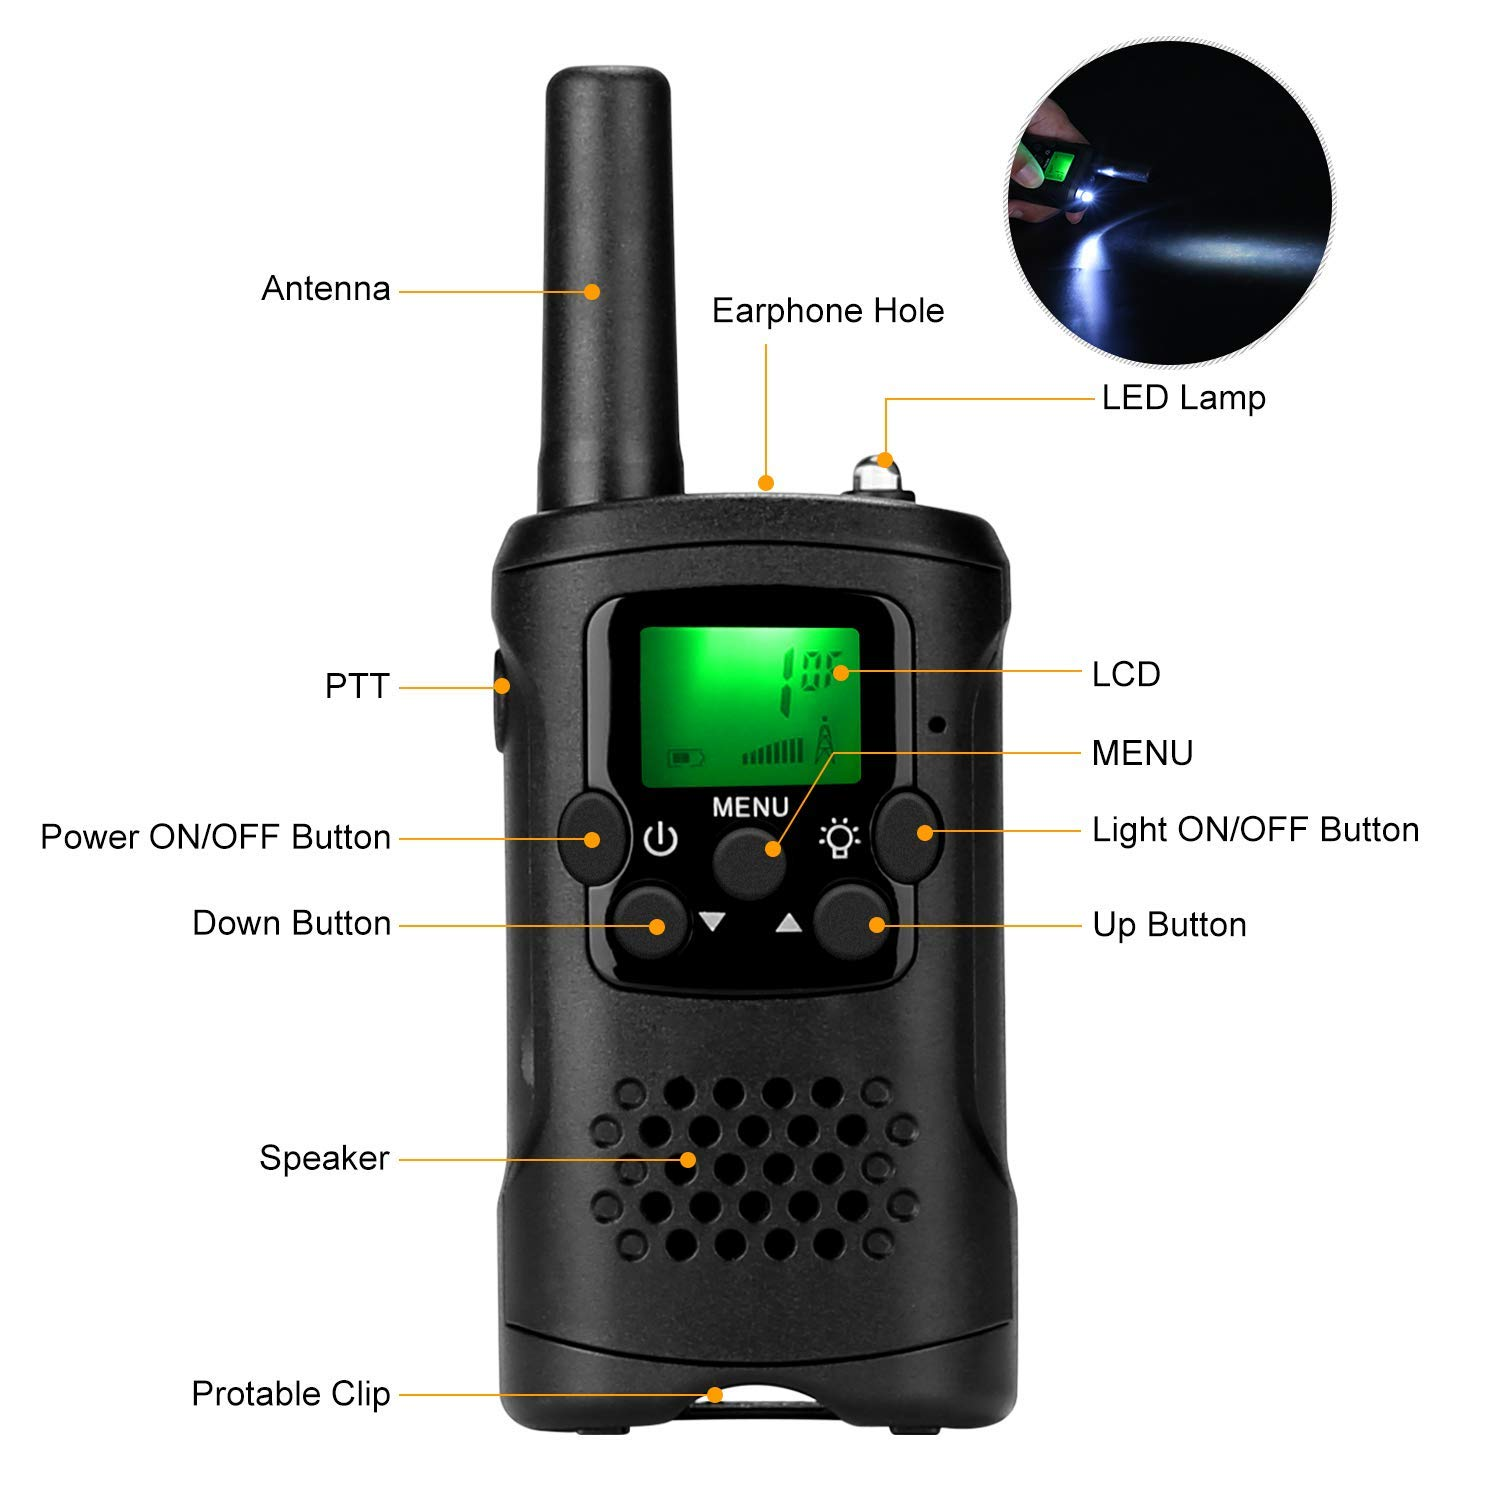 Kids Walkie Talkies with Whistles and Lanyards, Two Way Radio Long Range Walkie Talky Toy with Flashlight for Boys Girls by VERDUO (Image #1)